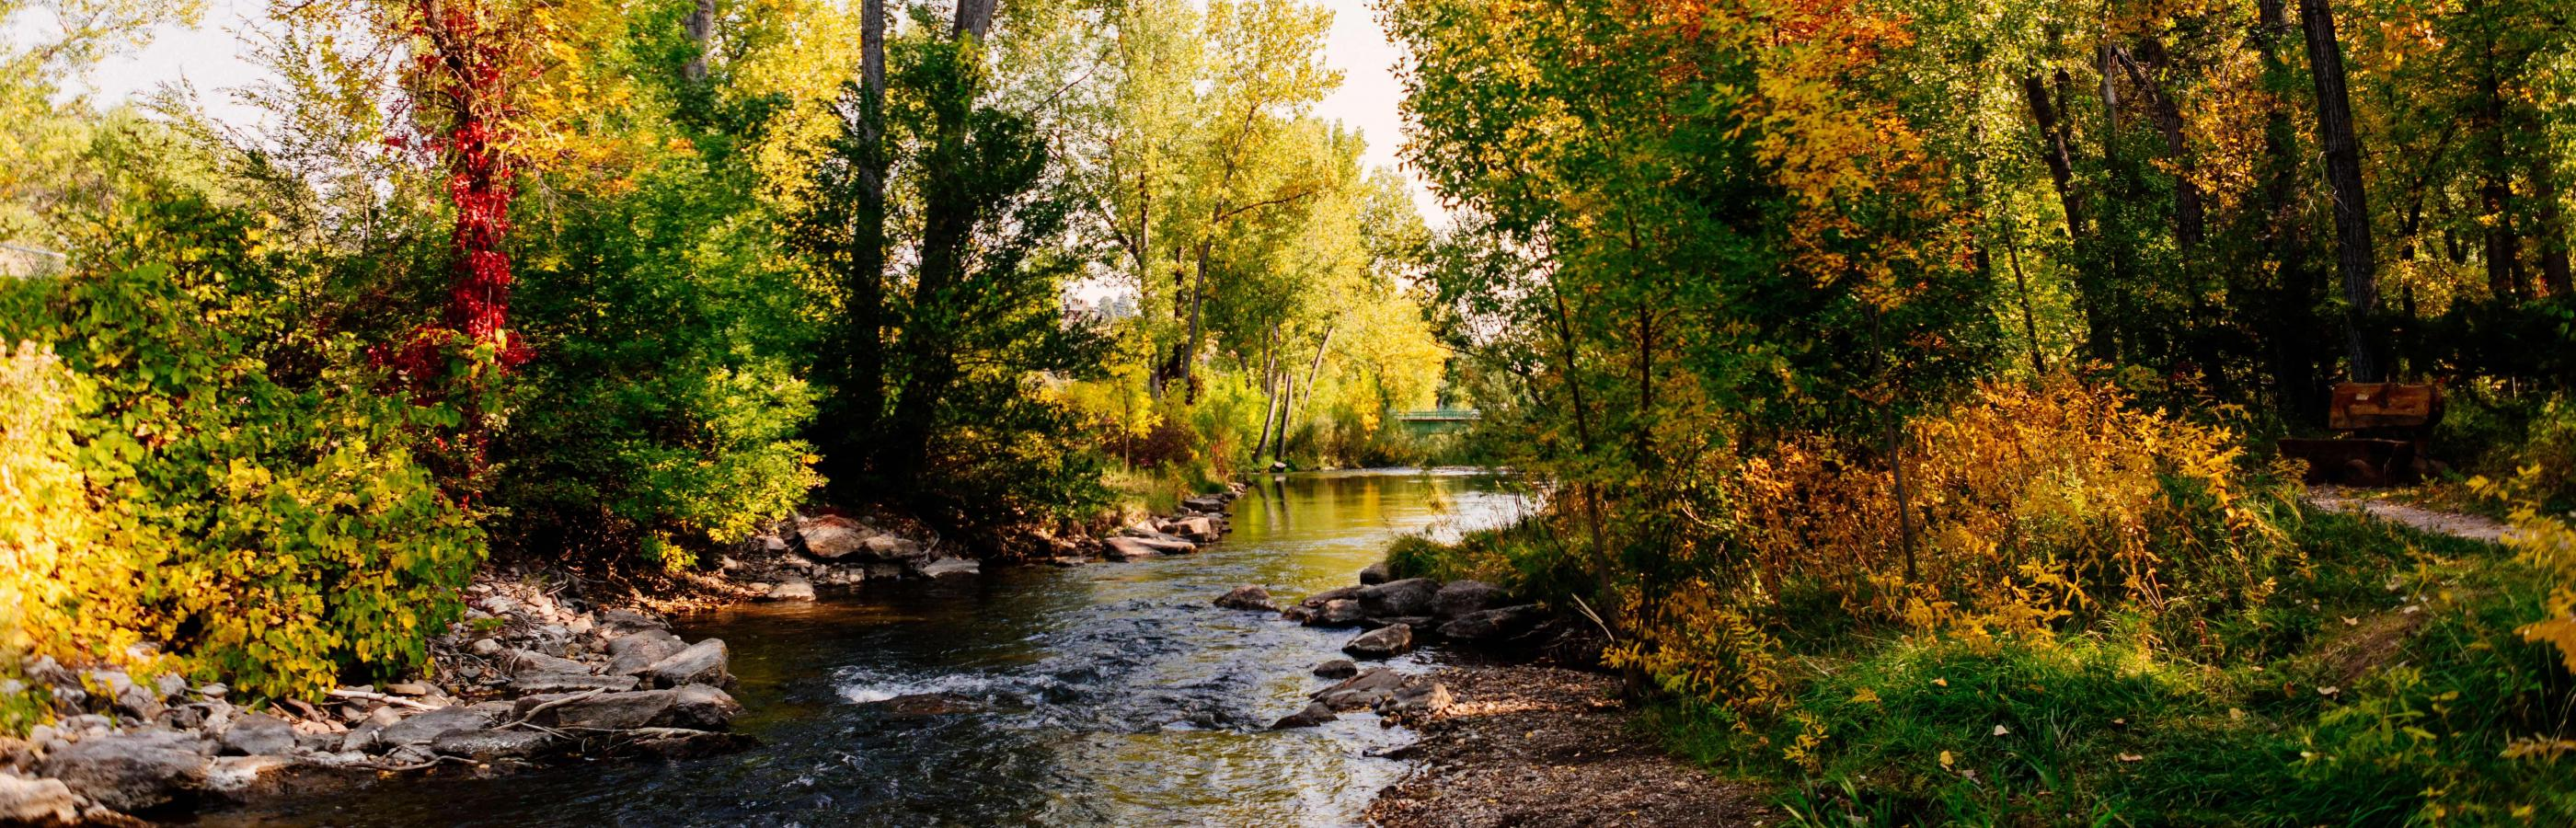 Fall colors at Founders Park in Rapid City